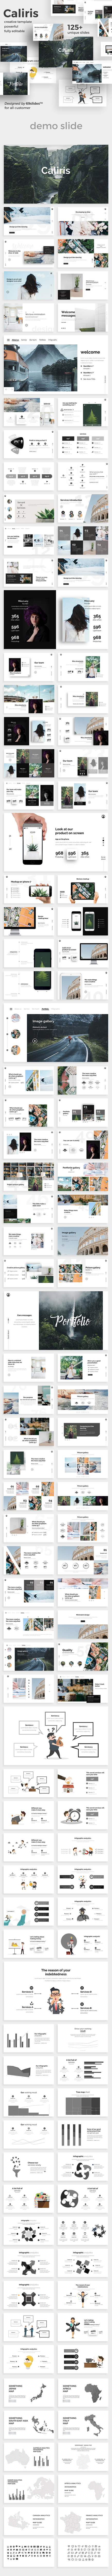 Caliris Creative Powerpoint Template - Creative PowerPoint Templates